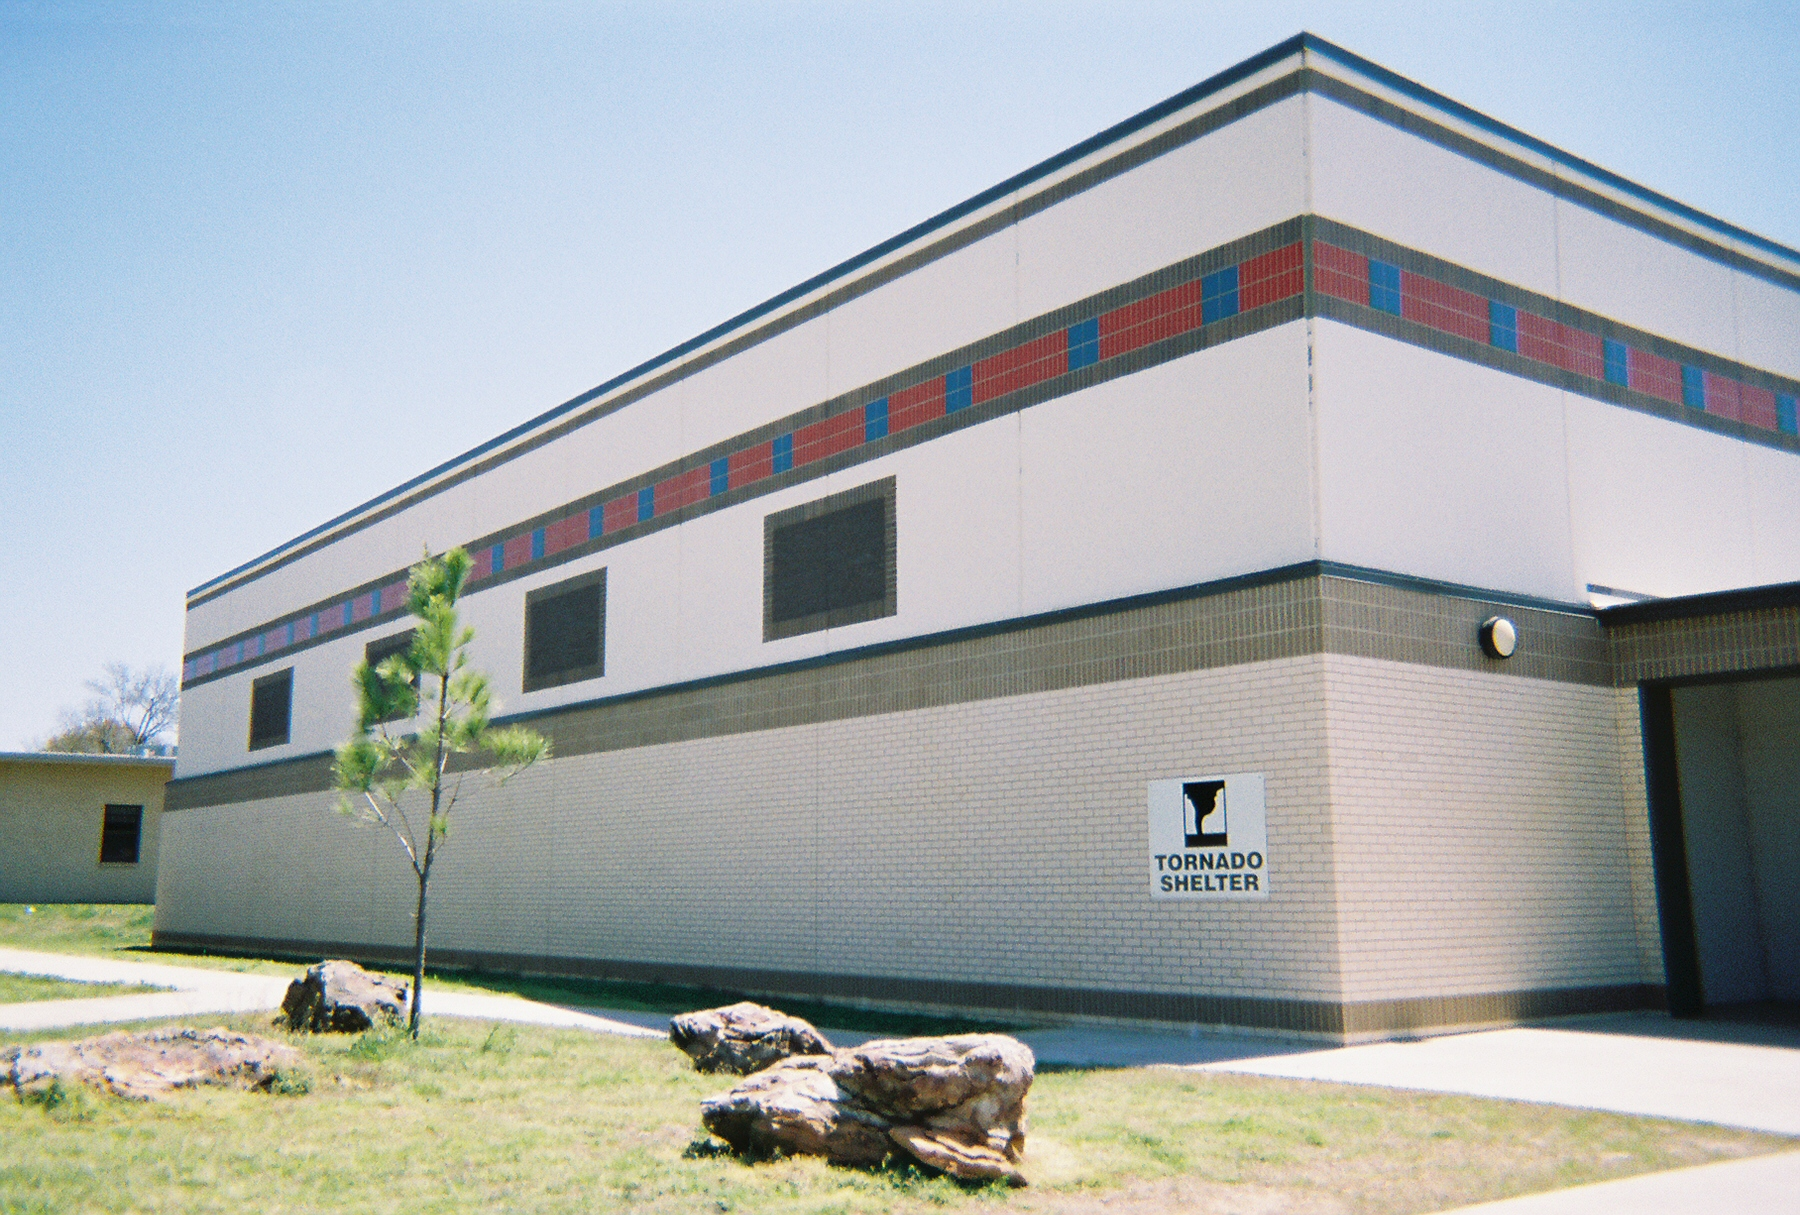 Arkansas_SS_Fort Smith_School Tornado Shelter